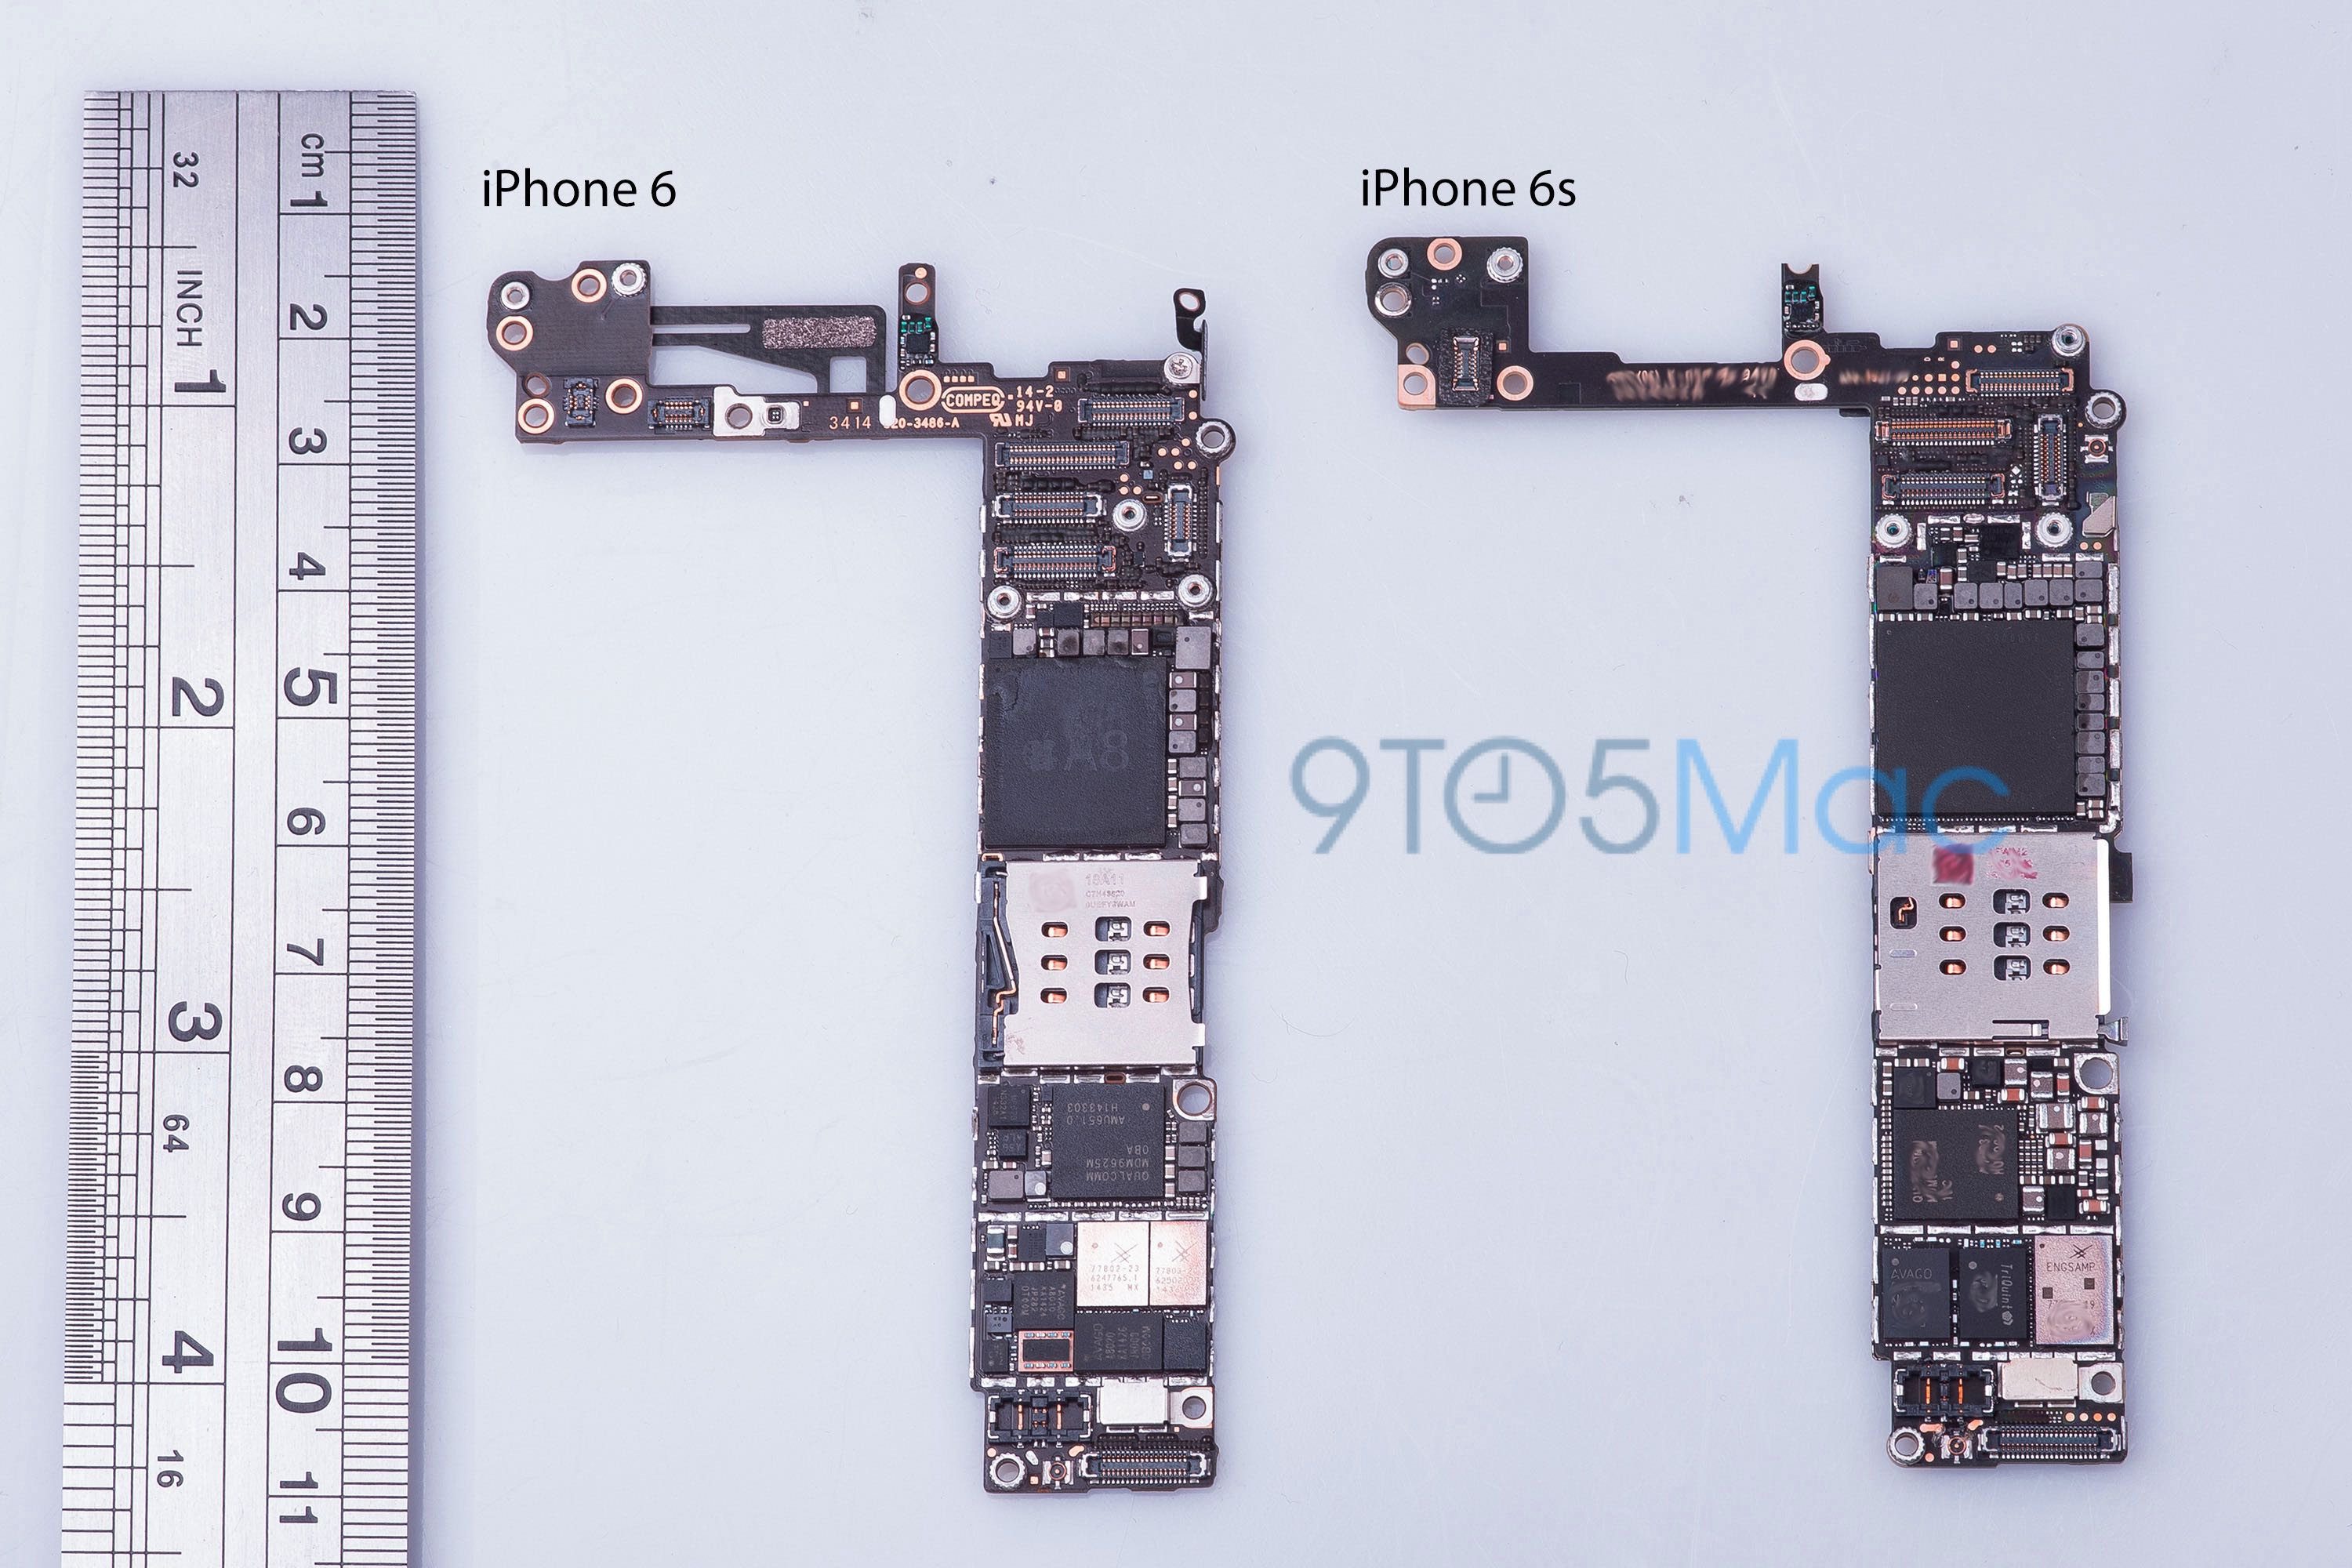 iphone 6 logic board diagram analysis of 'iphone 6s' logic board suggests improved nfc ... apple iphone 6 block diagram